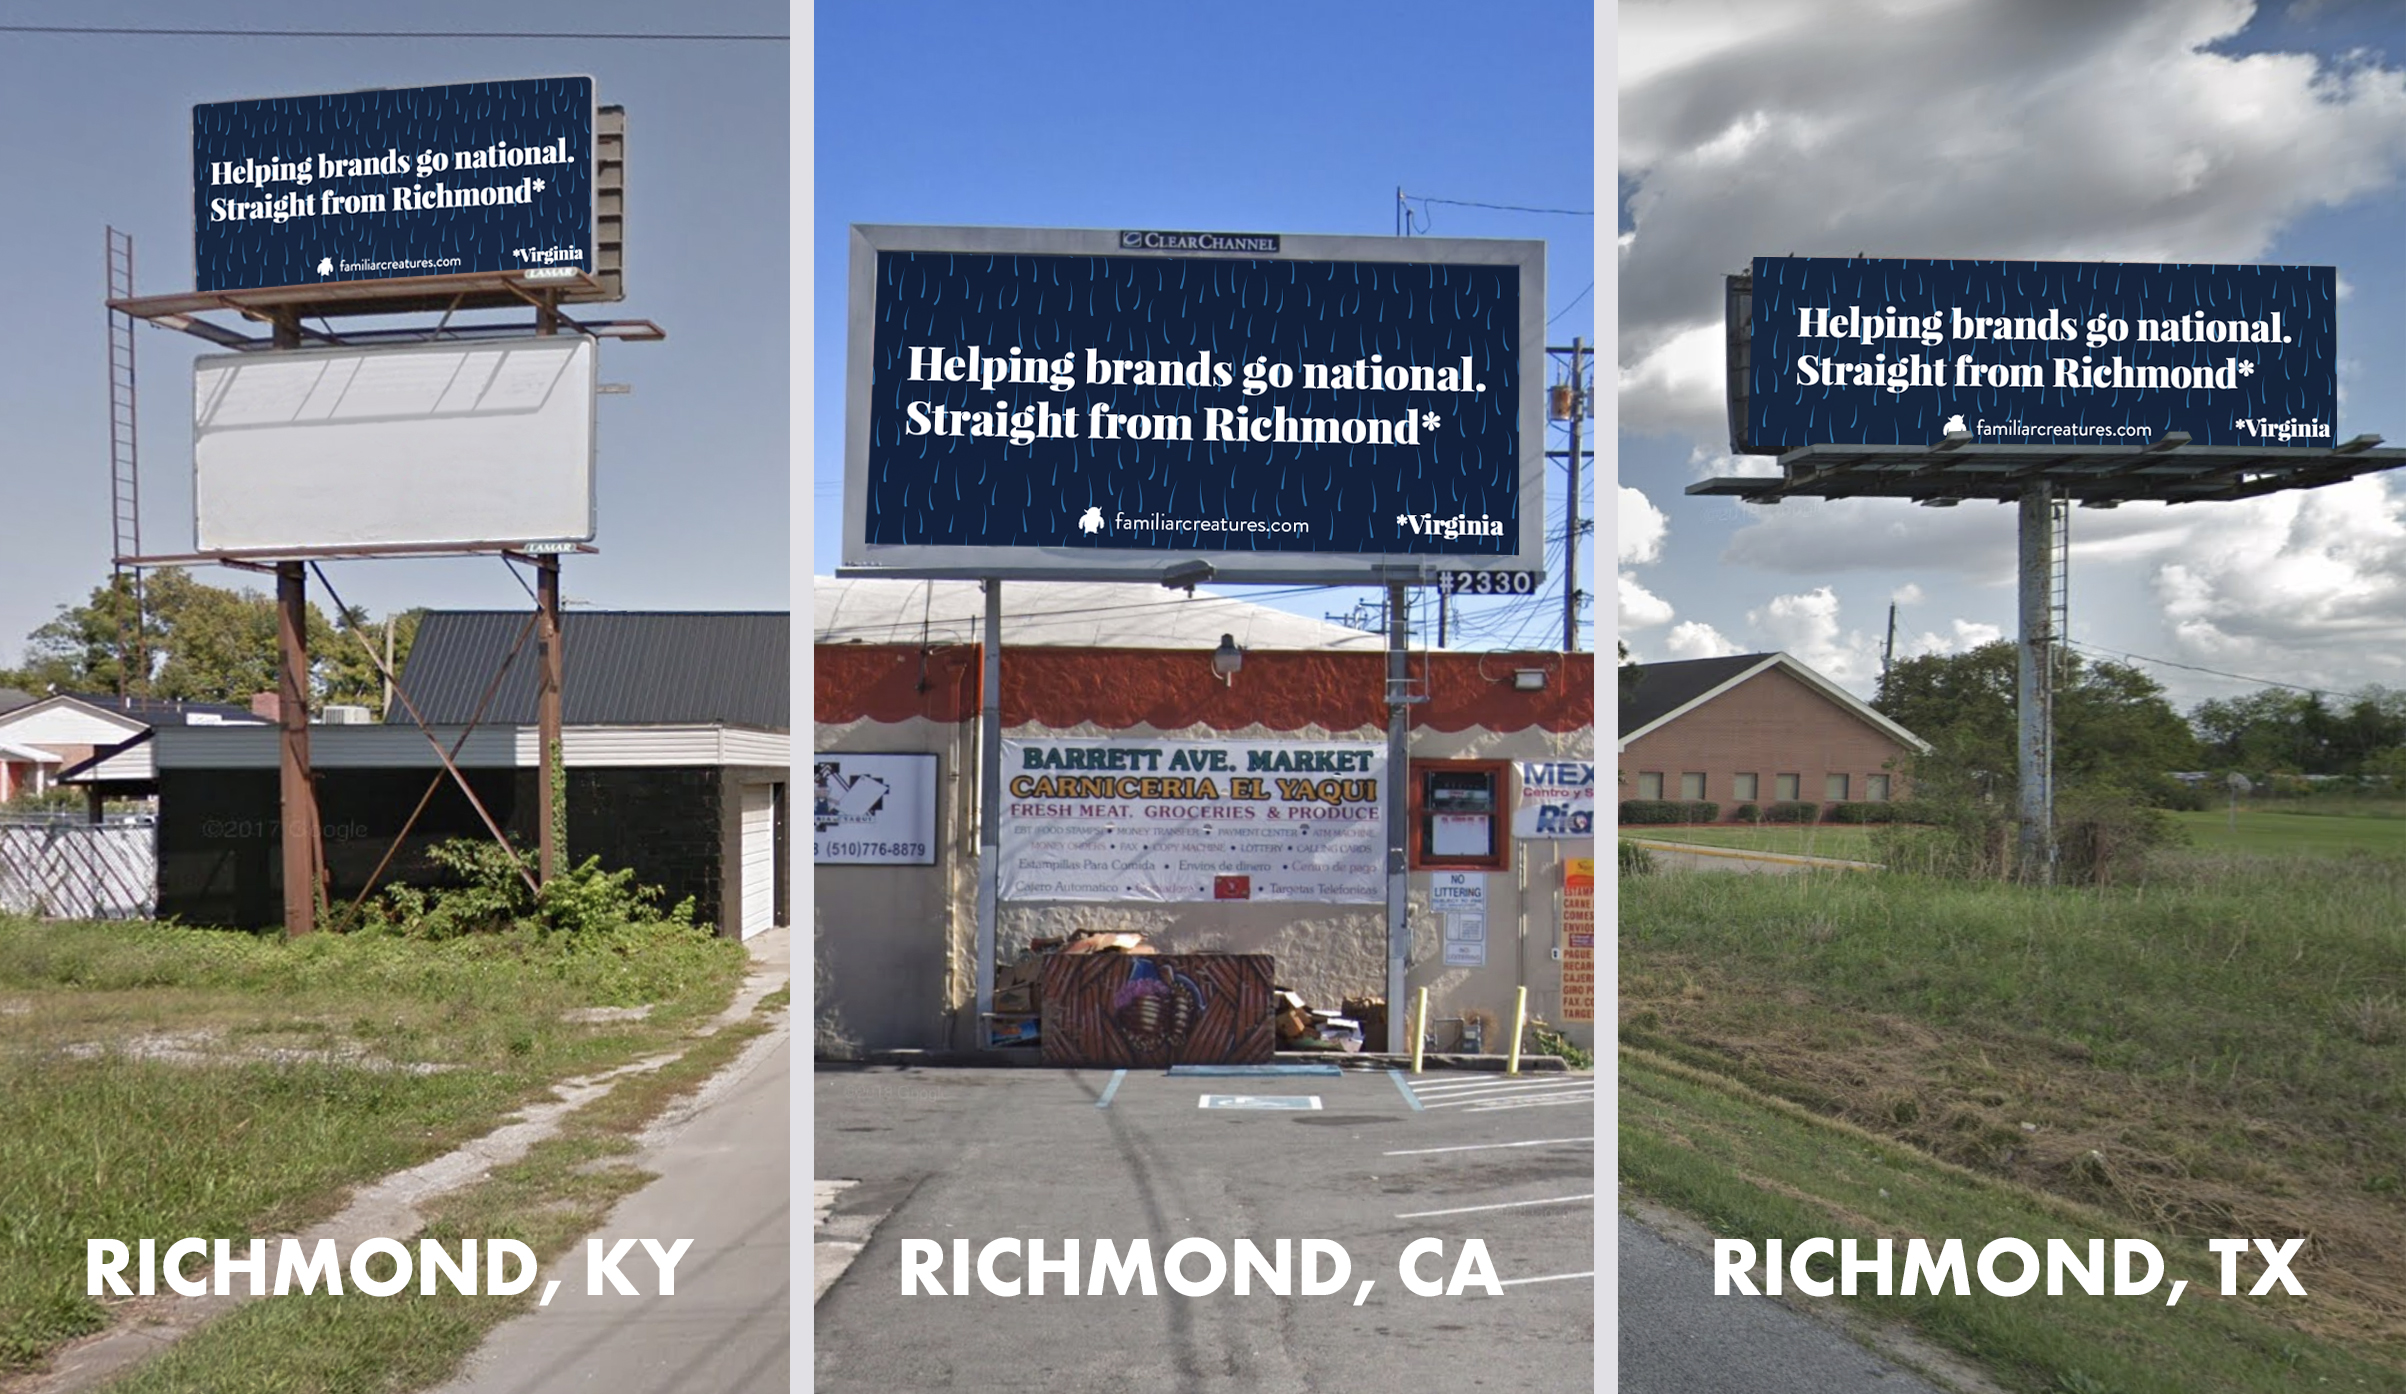 Familiar Creatures' billboards in Richmonds across the country.